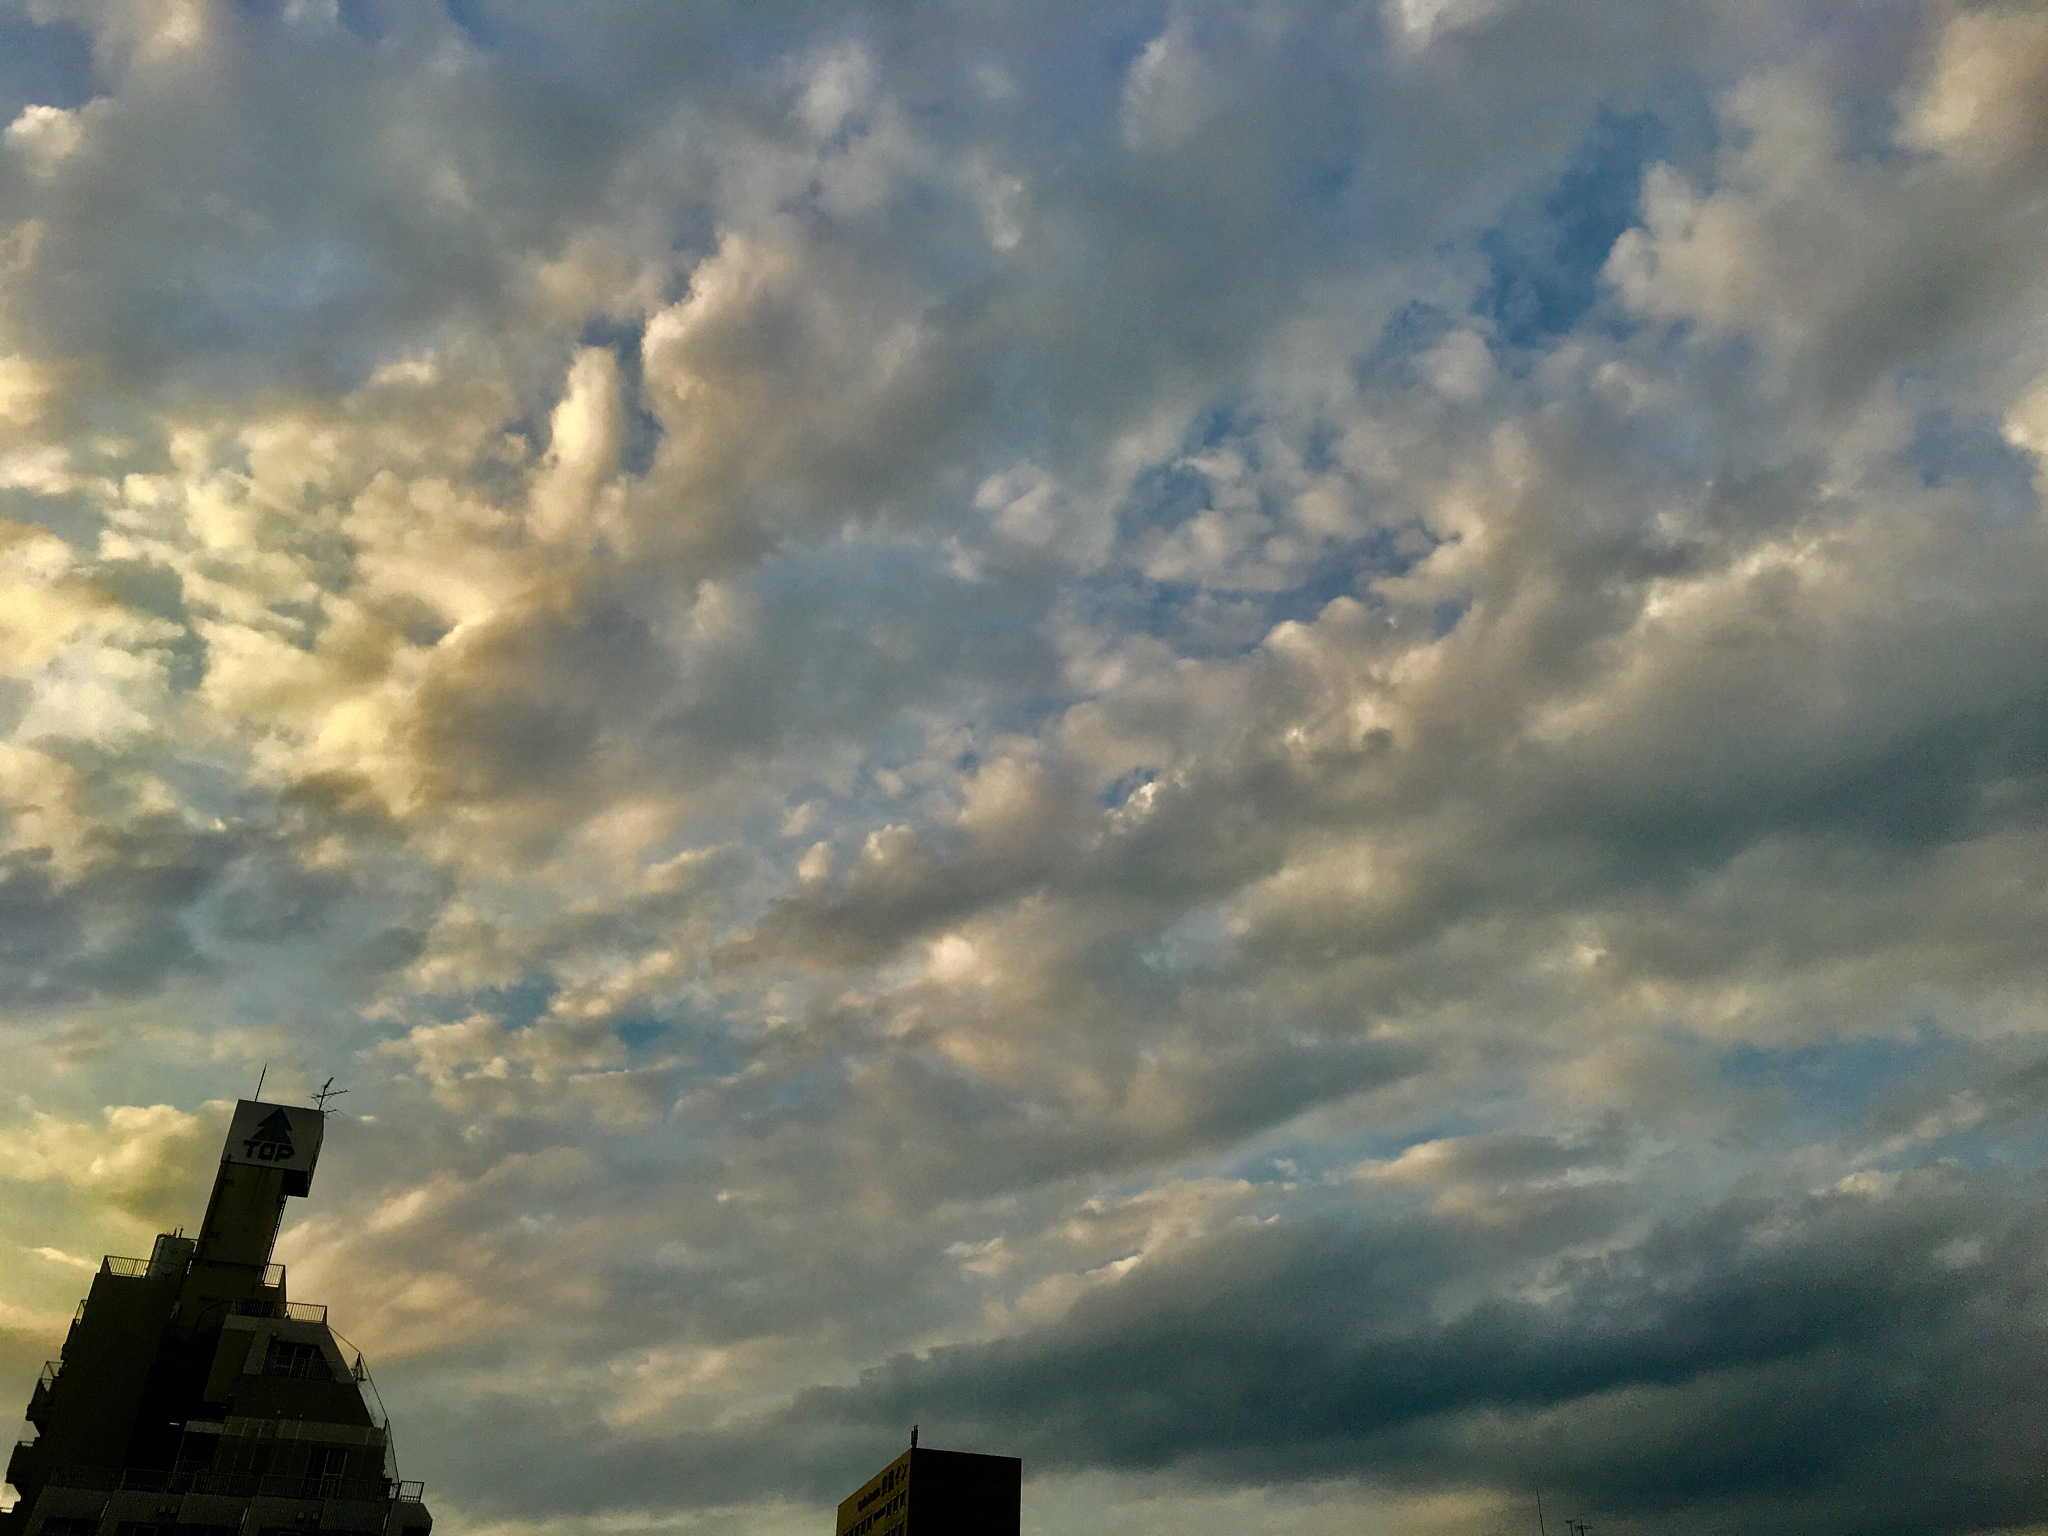 Clouds by Lucia_skylover